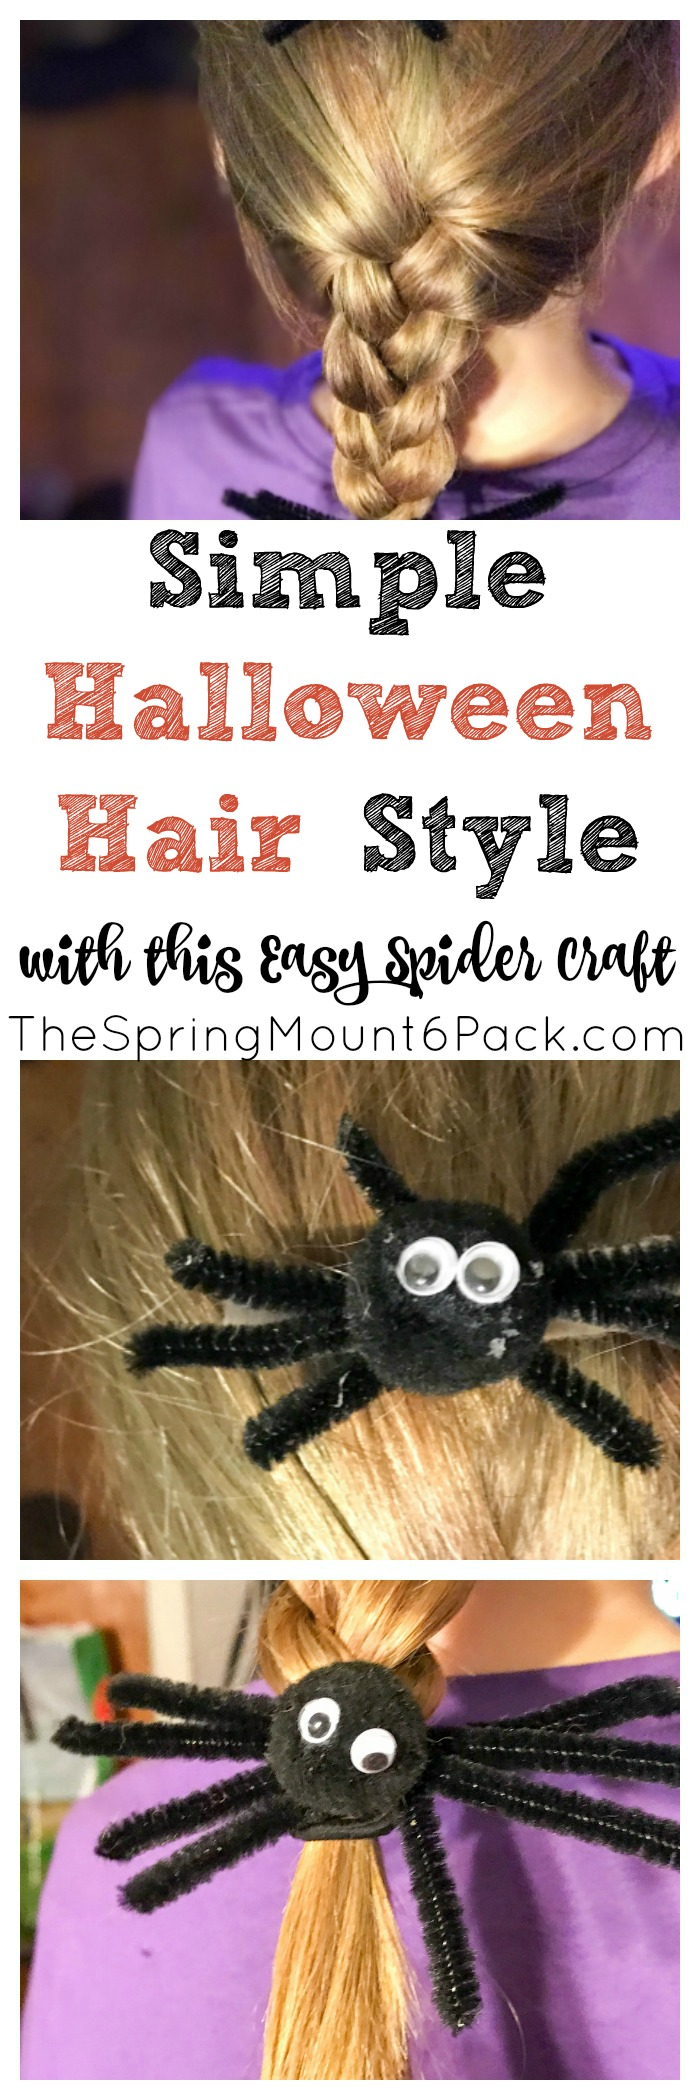 A simple Halloween hairstyle. Create a fun spider craft that can double as a Halloween hair accessory. We created Halloween hair ties and Halloween barrette with our spiders.